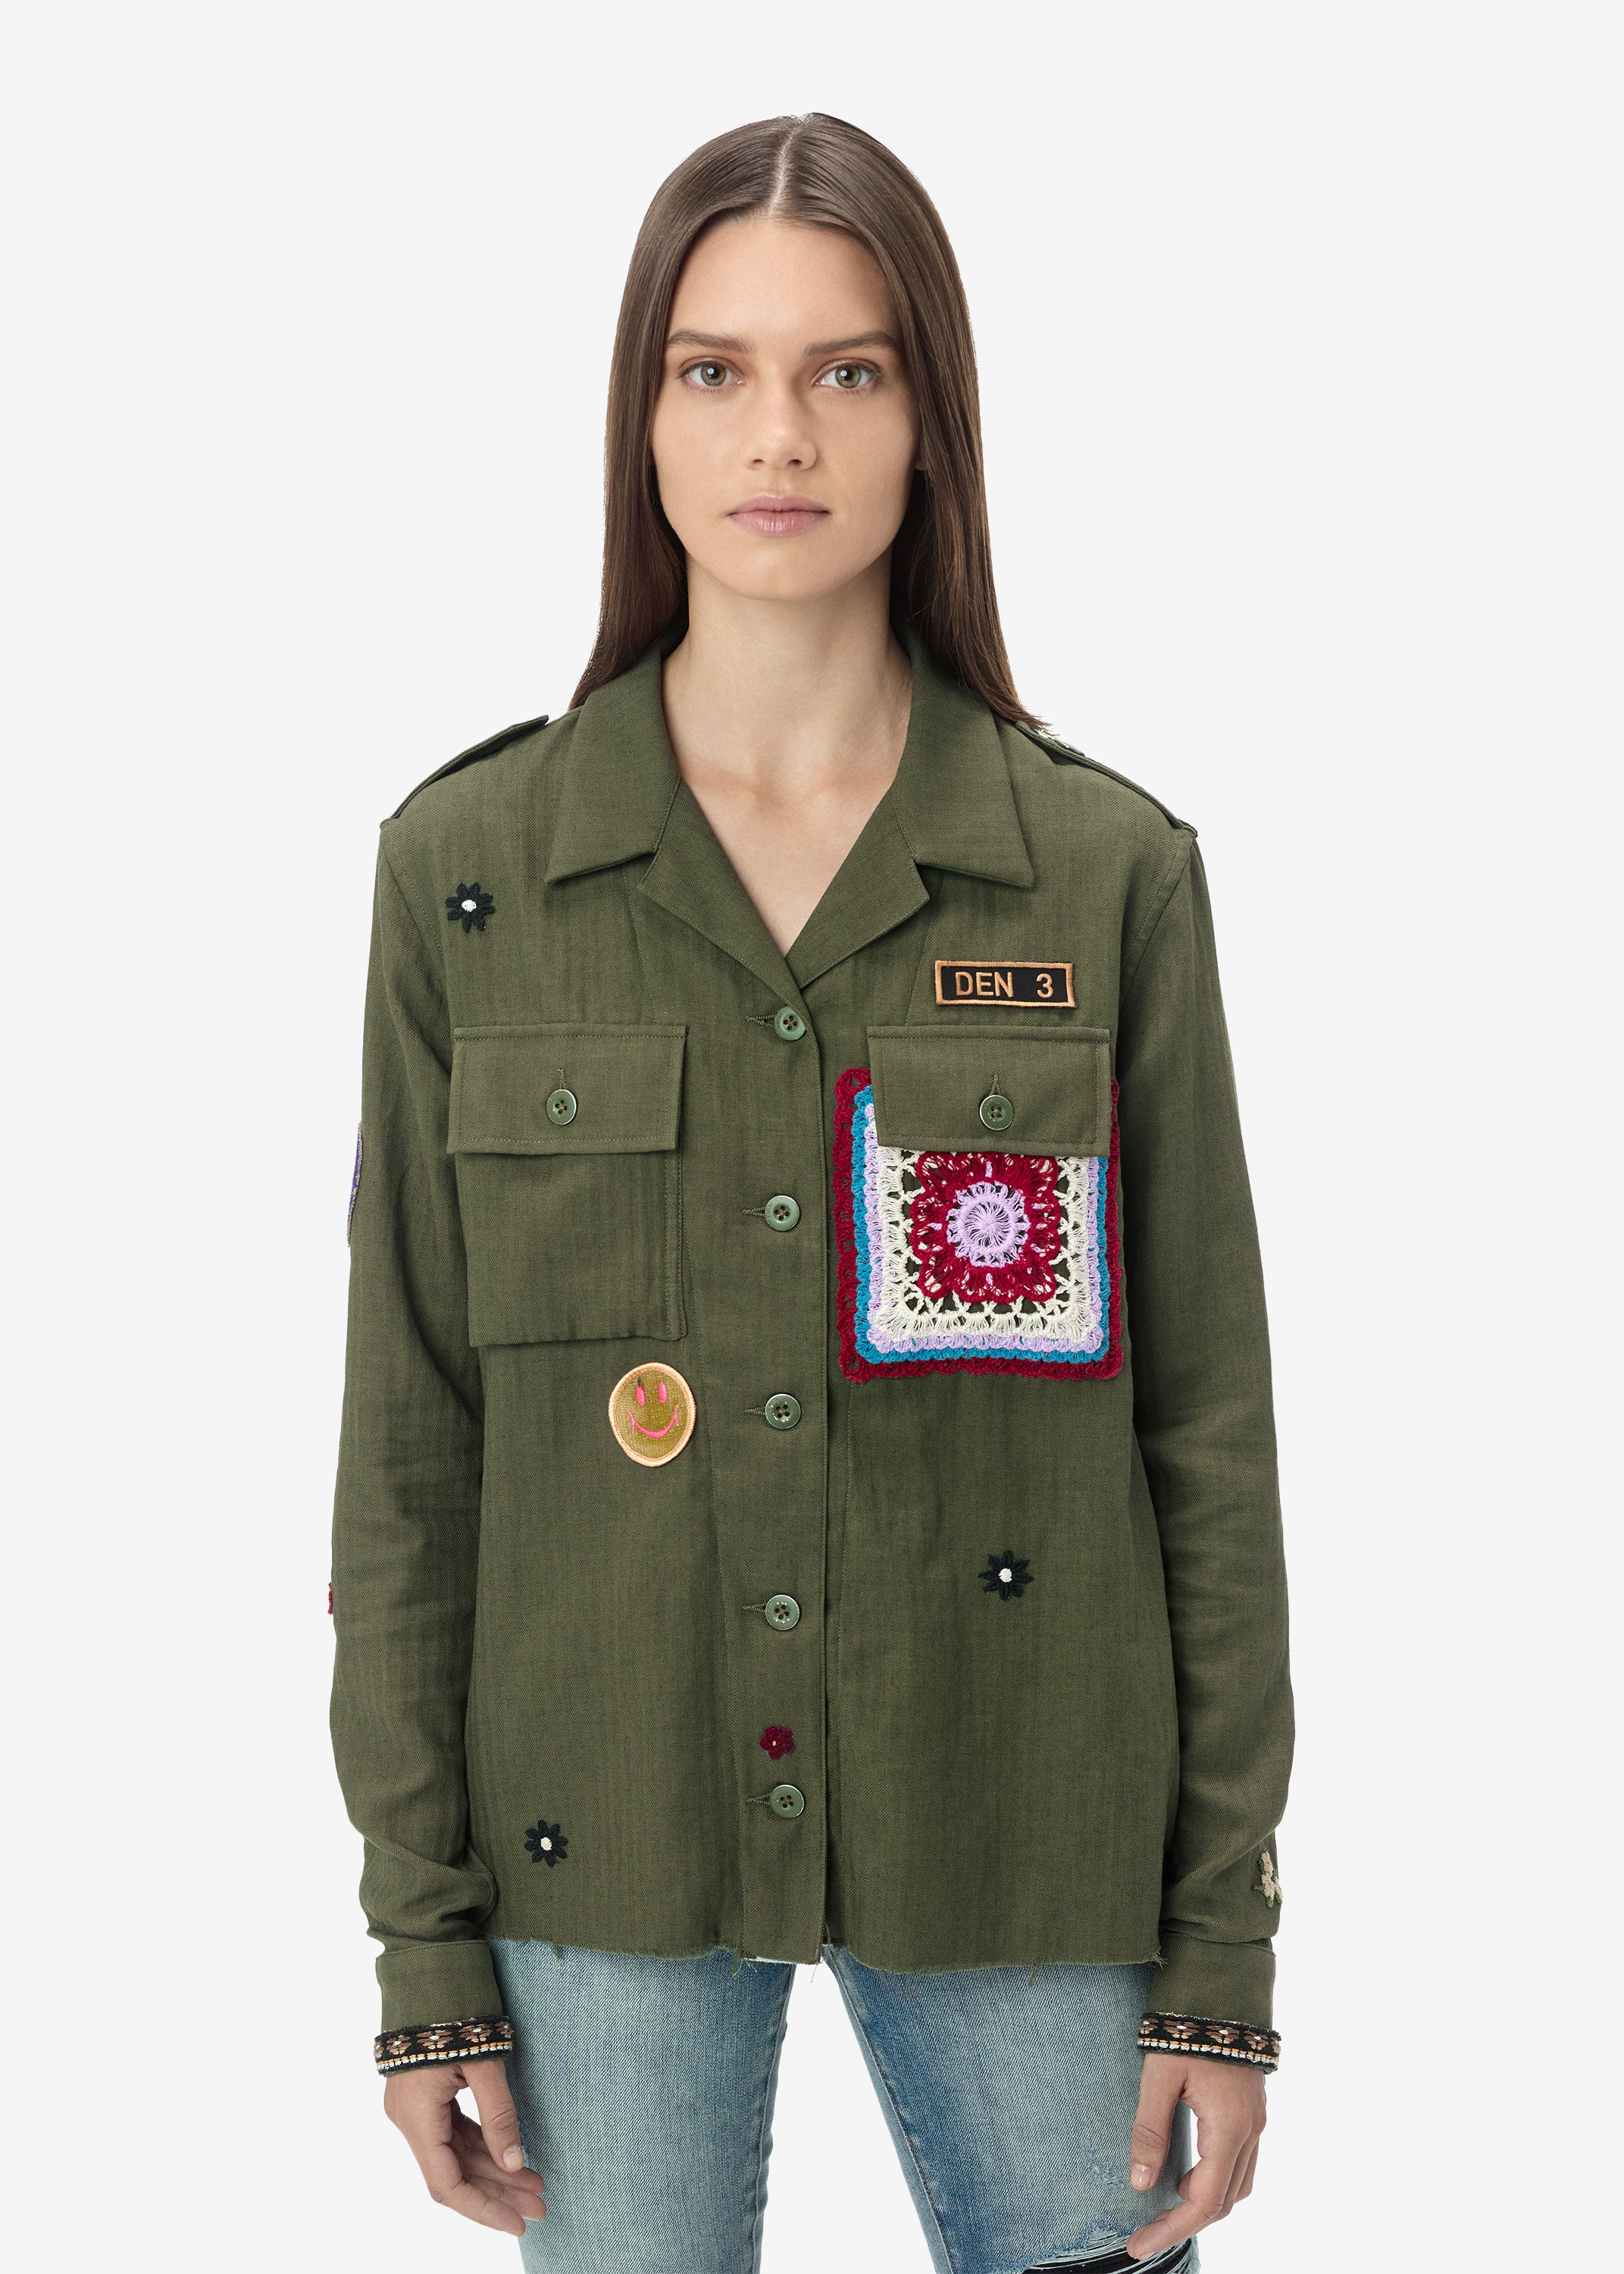 crochet-patch-military-shirt-military-green-image-1